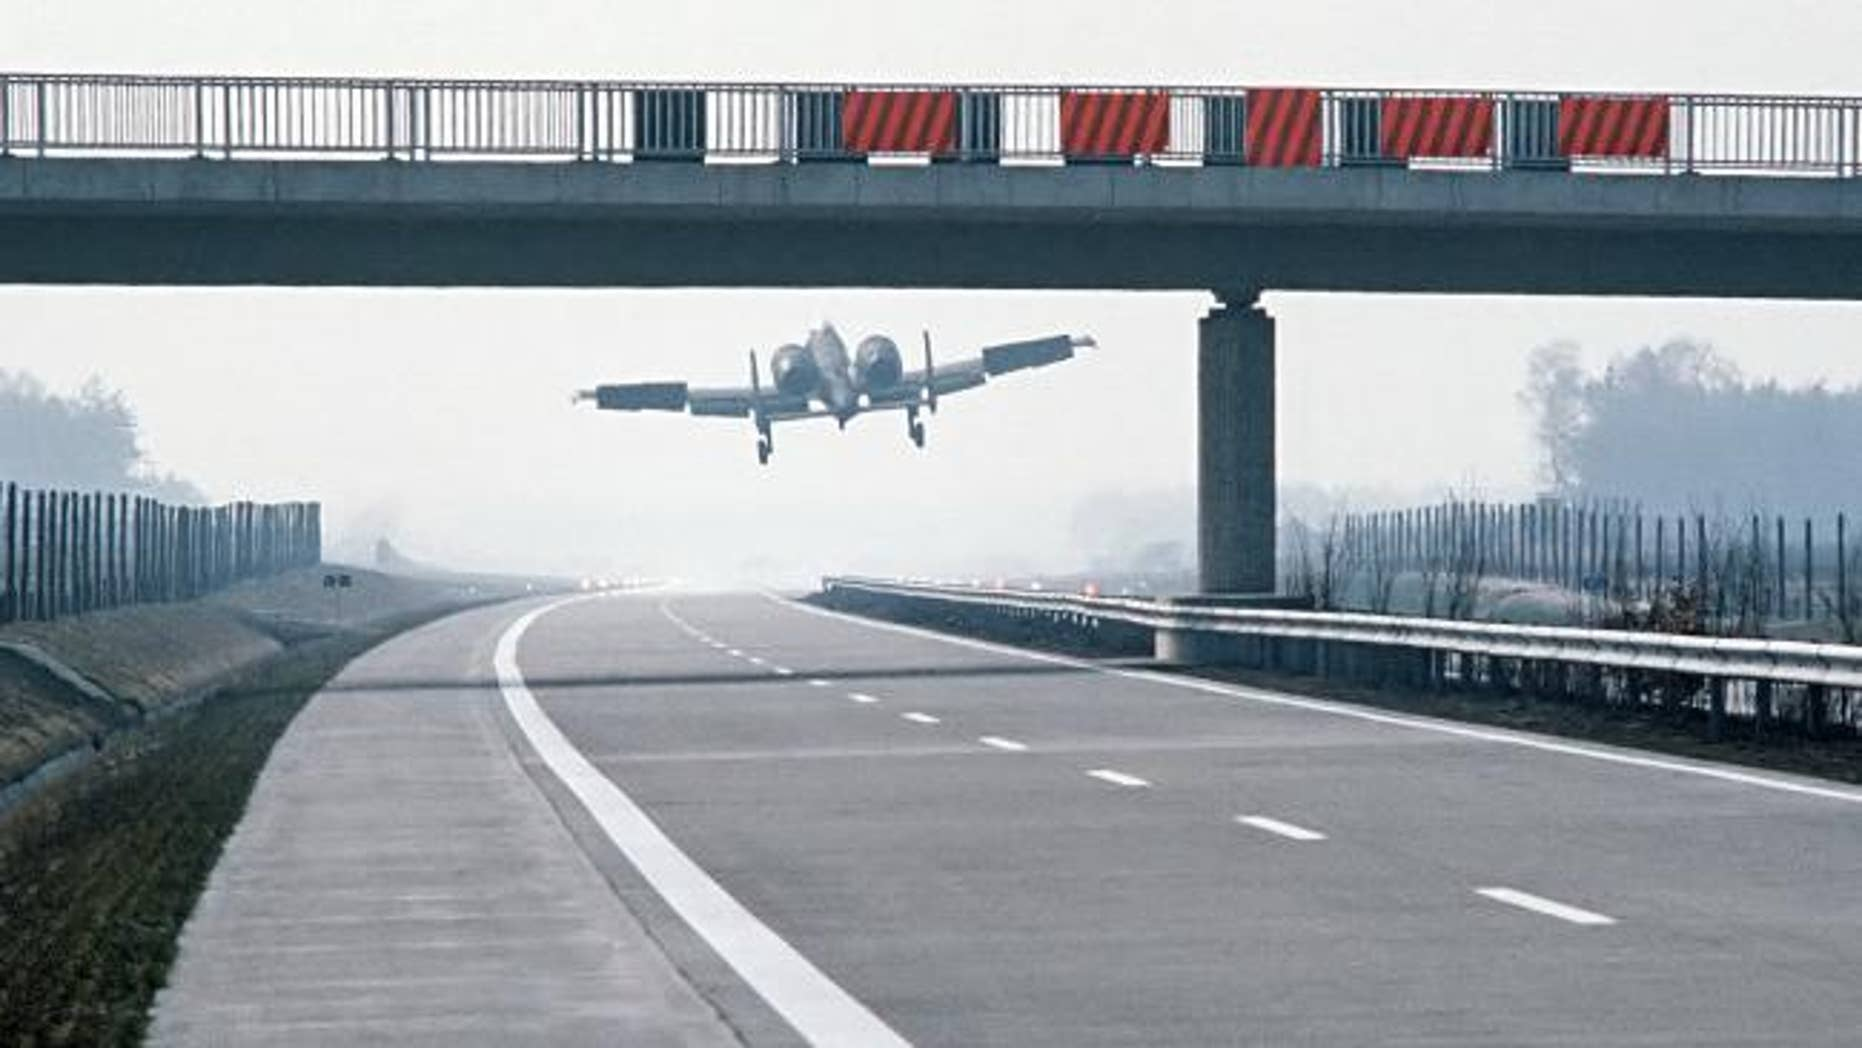 An A-10 Thunderbolt II lands on the German autobahn in the 1980s